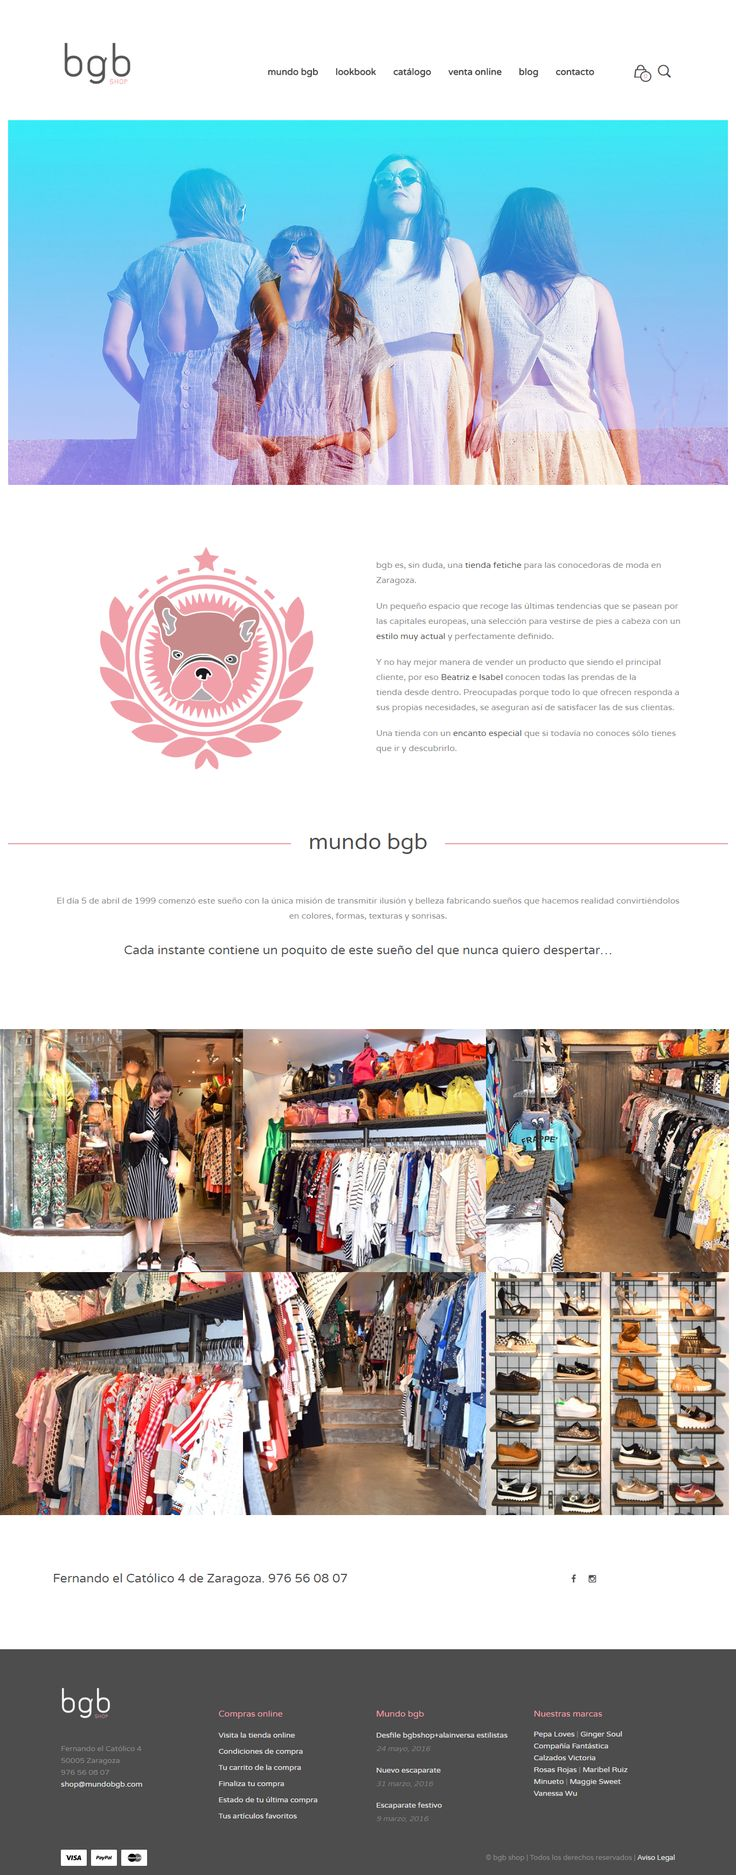 mundobgb.com online shop, powered by Mr Tailor WooCommerce theme http://themeforest.net/item/mr-tailor-responsive-woocommerce-theme/7292110?&utm_source=pinterest.com&utm_medium=social&utm_content=mundo-bgb&utm_campaign=showcase #woocommerce #ecommerce #clothingshop #wordpress #mrtailor